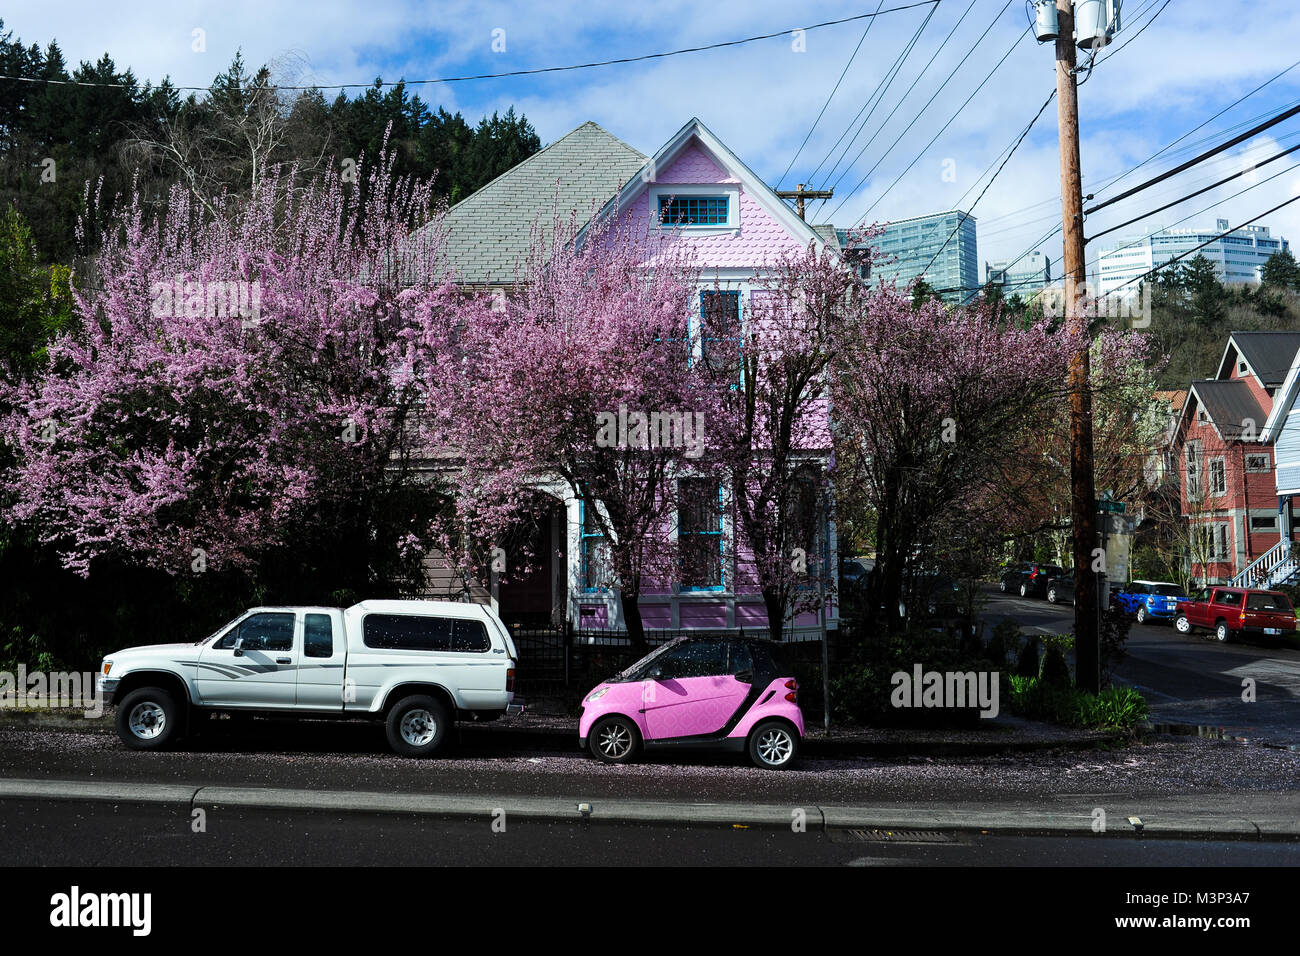 A Pink Car Is Parked Beneath A Tree With Pink Flowers In Portland